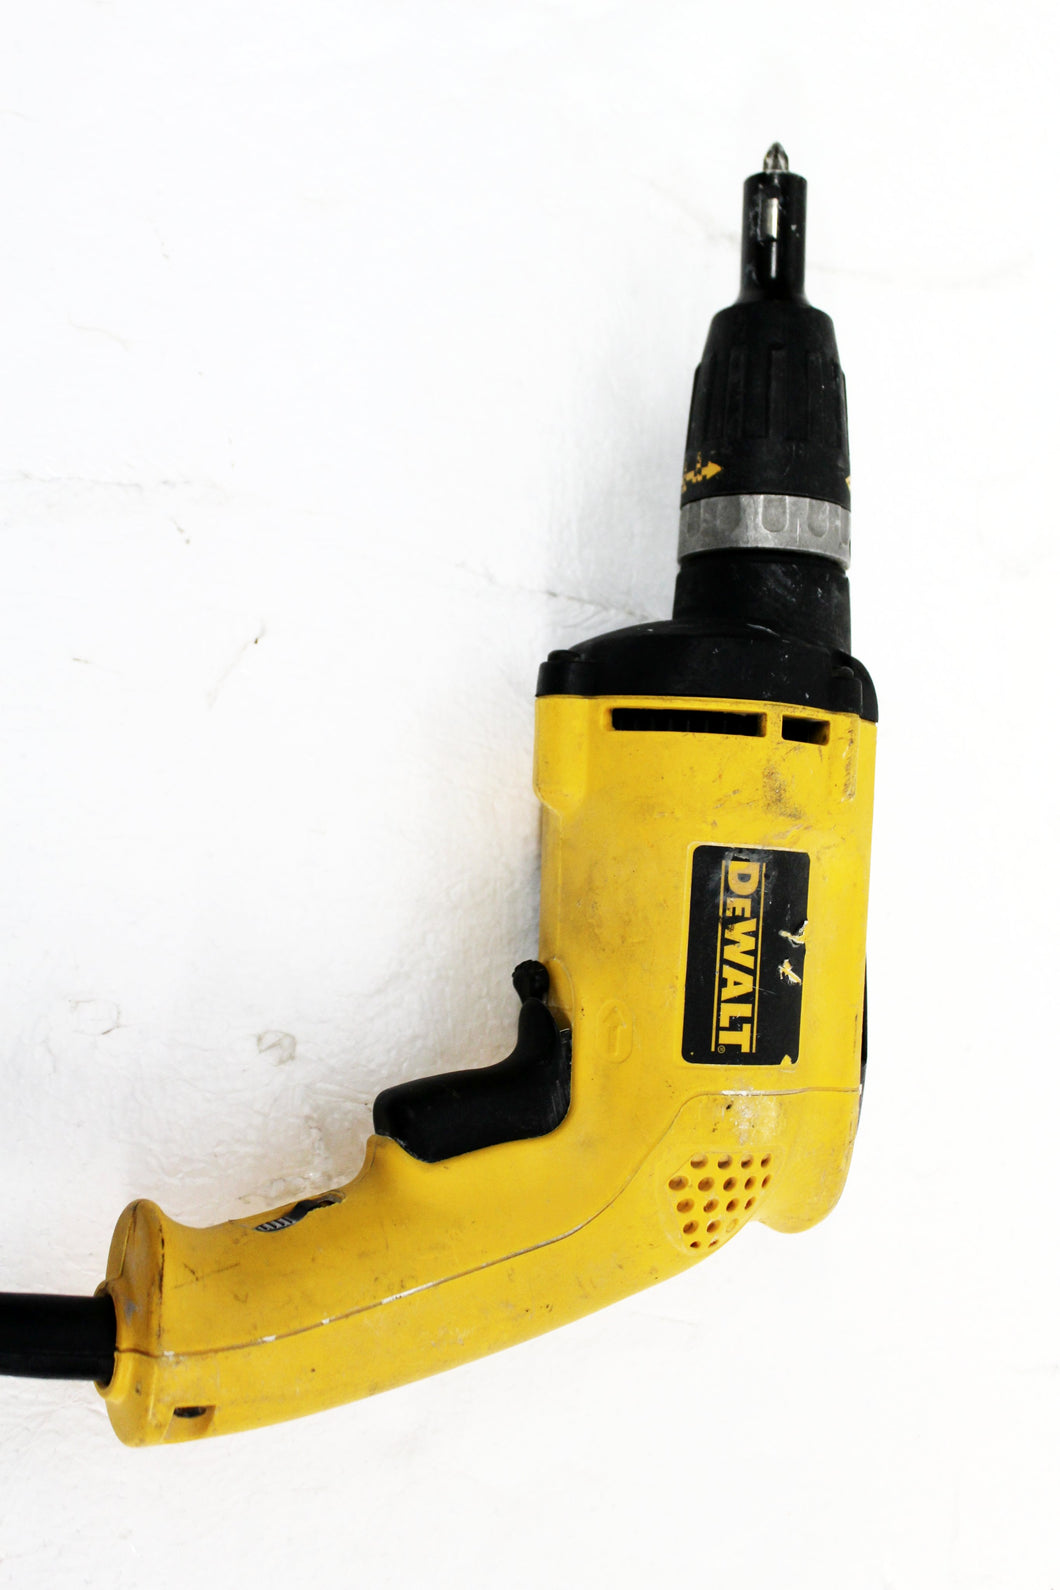 DEWALT DW255 6-Amp Drywall Screwdriver, this is pre-owned item #337984C